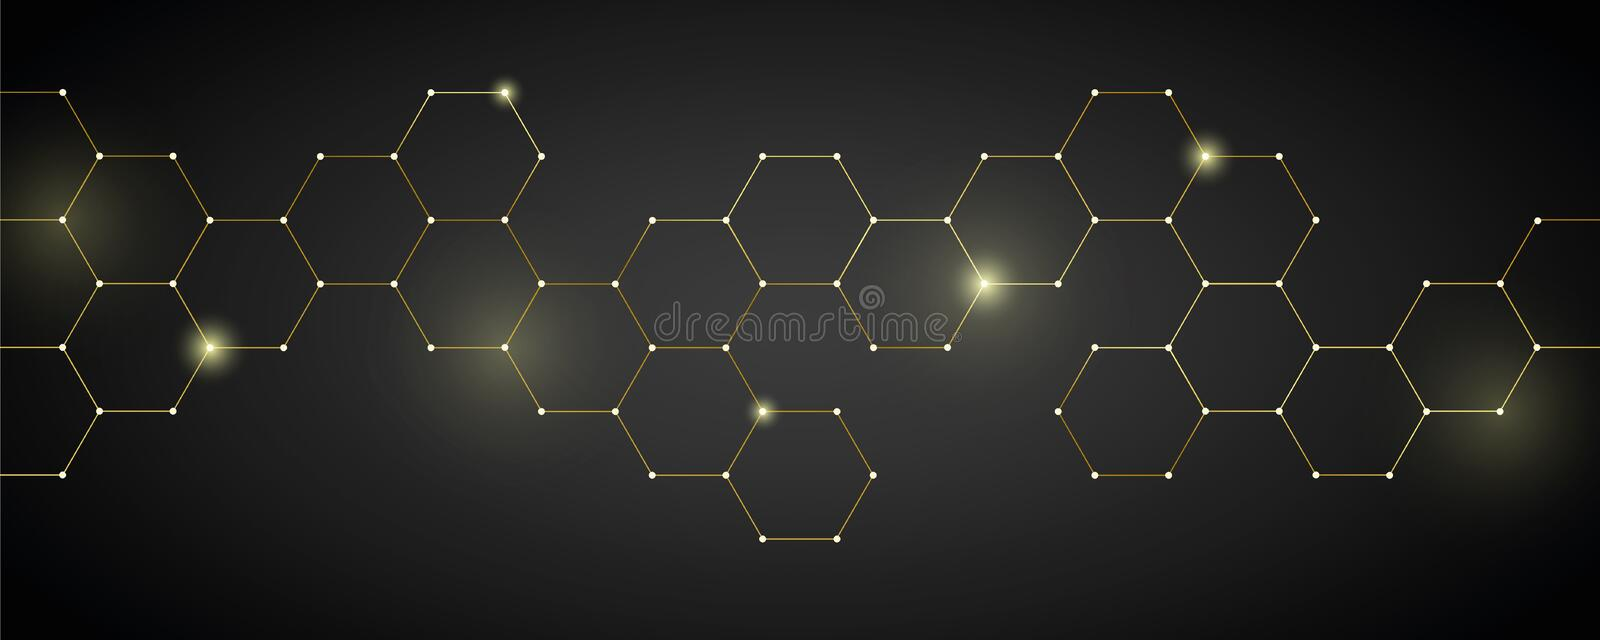 Gold technical honeycomb background digital electronics. Vector illustration EPS10 royalty free illustration